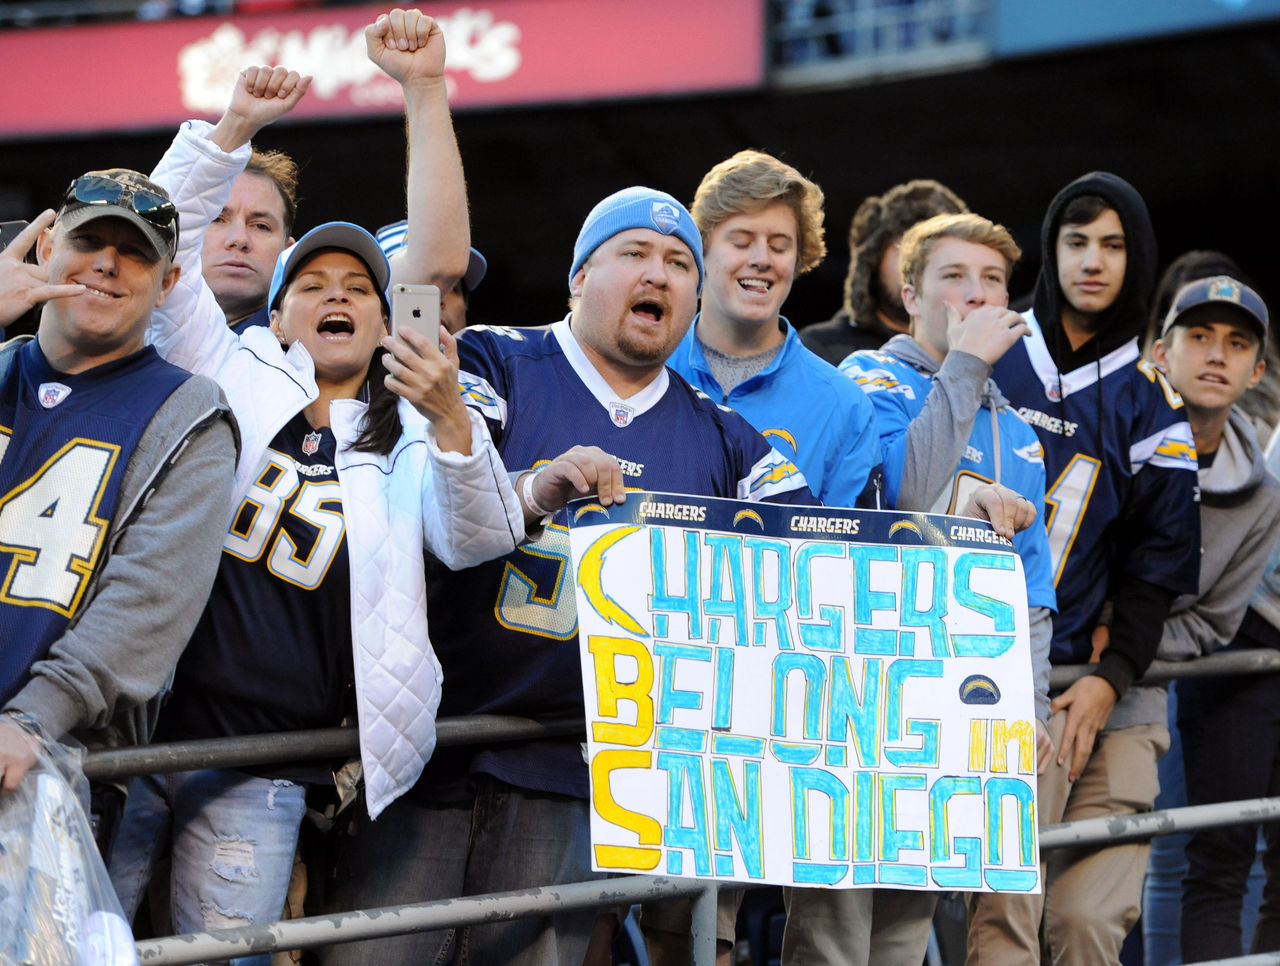 Cropped 2017 01 02t020601z 2135971122 nocid rtrmadp 3 nfl kansas city chiefs at san diego chargers